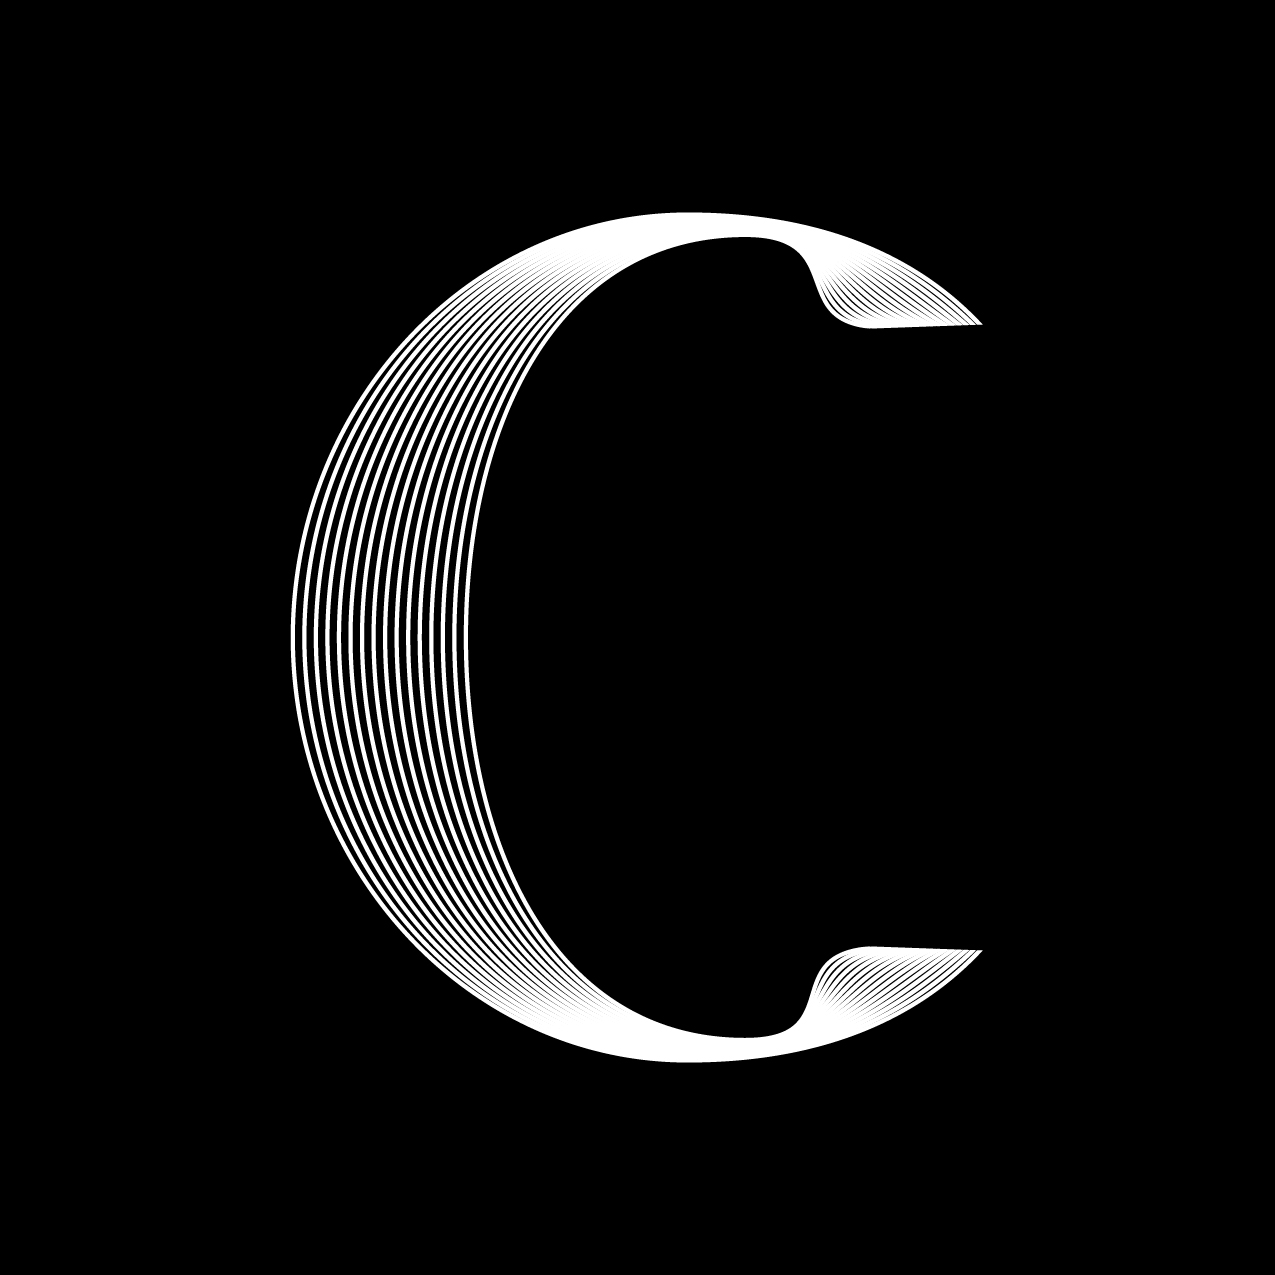 Letter C1 design by Furia